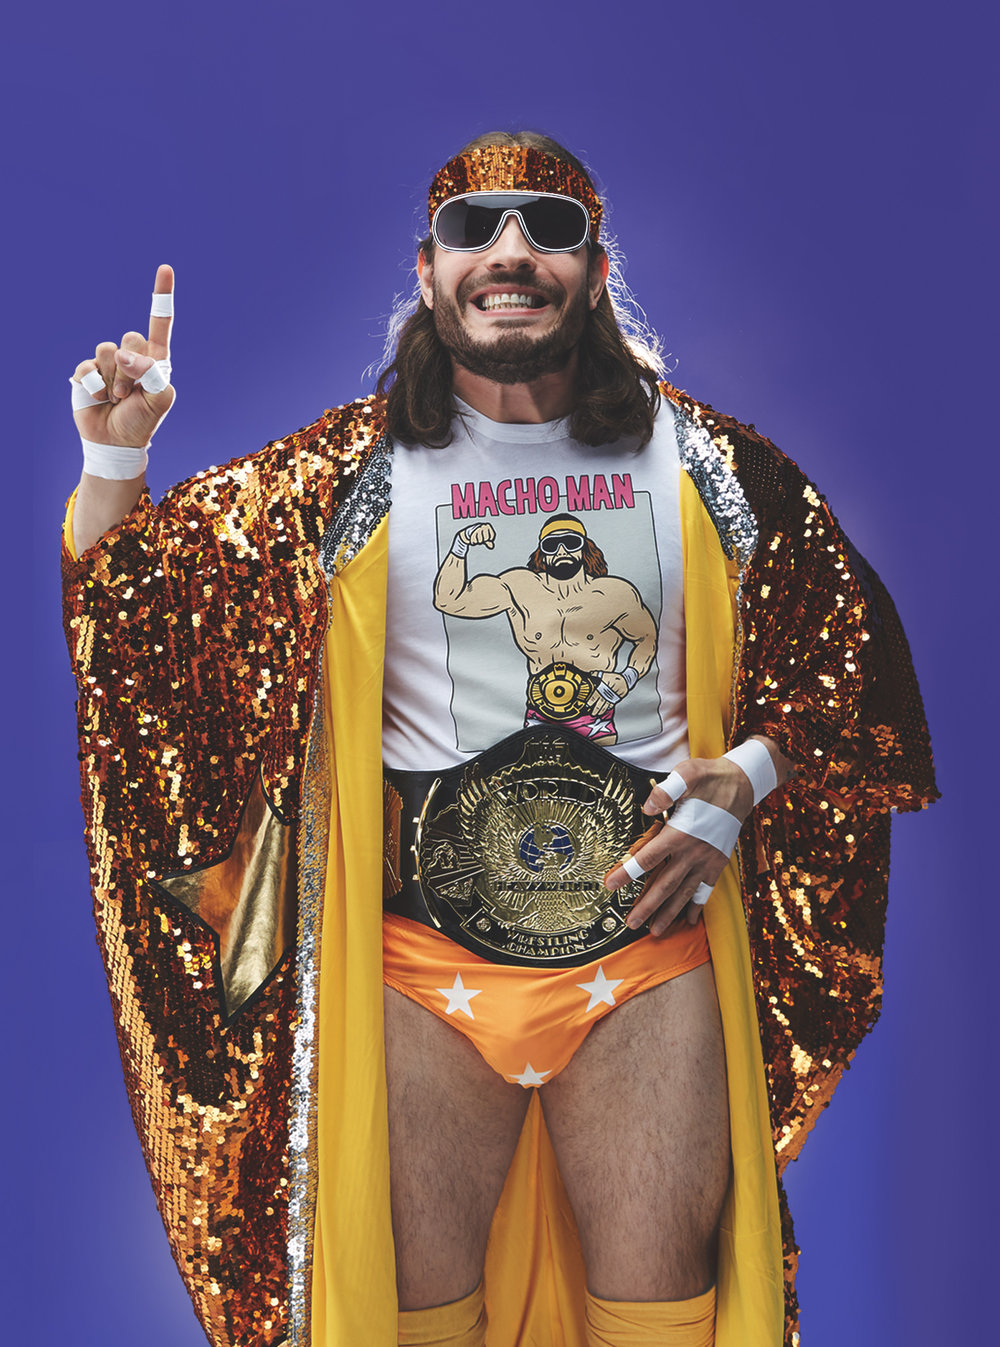 macho-madness-gold.jpg